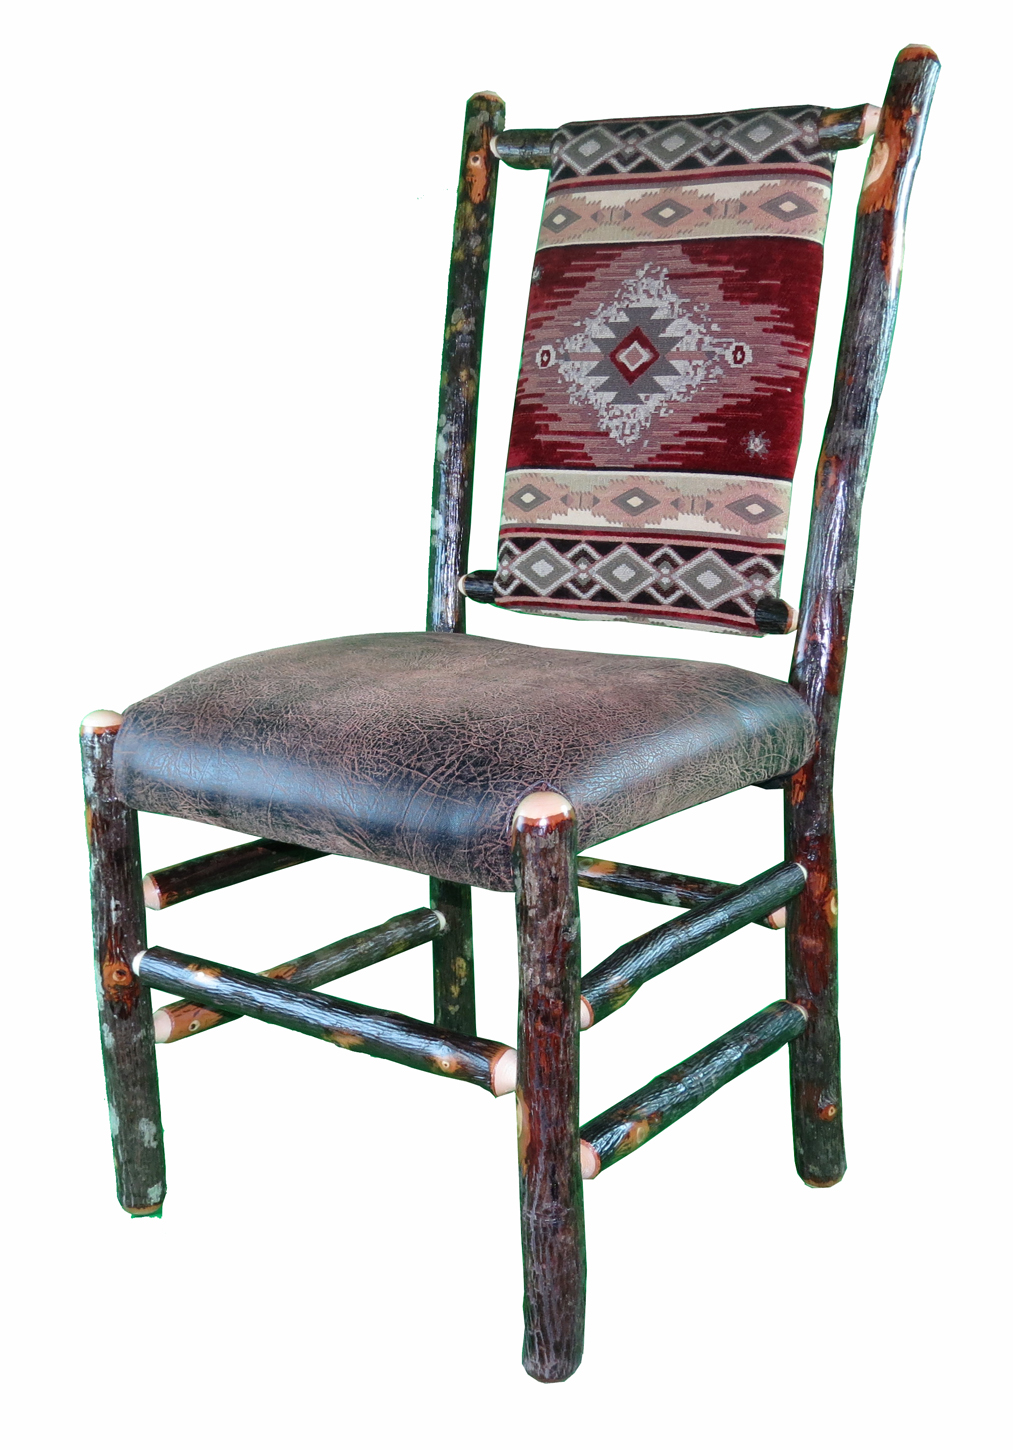 Iteminformation also Mission Rocker Mr235 furthermore Ruhiupdichso in addition Gallery together with Furniture. on hickory rocking chair